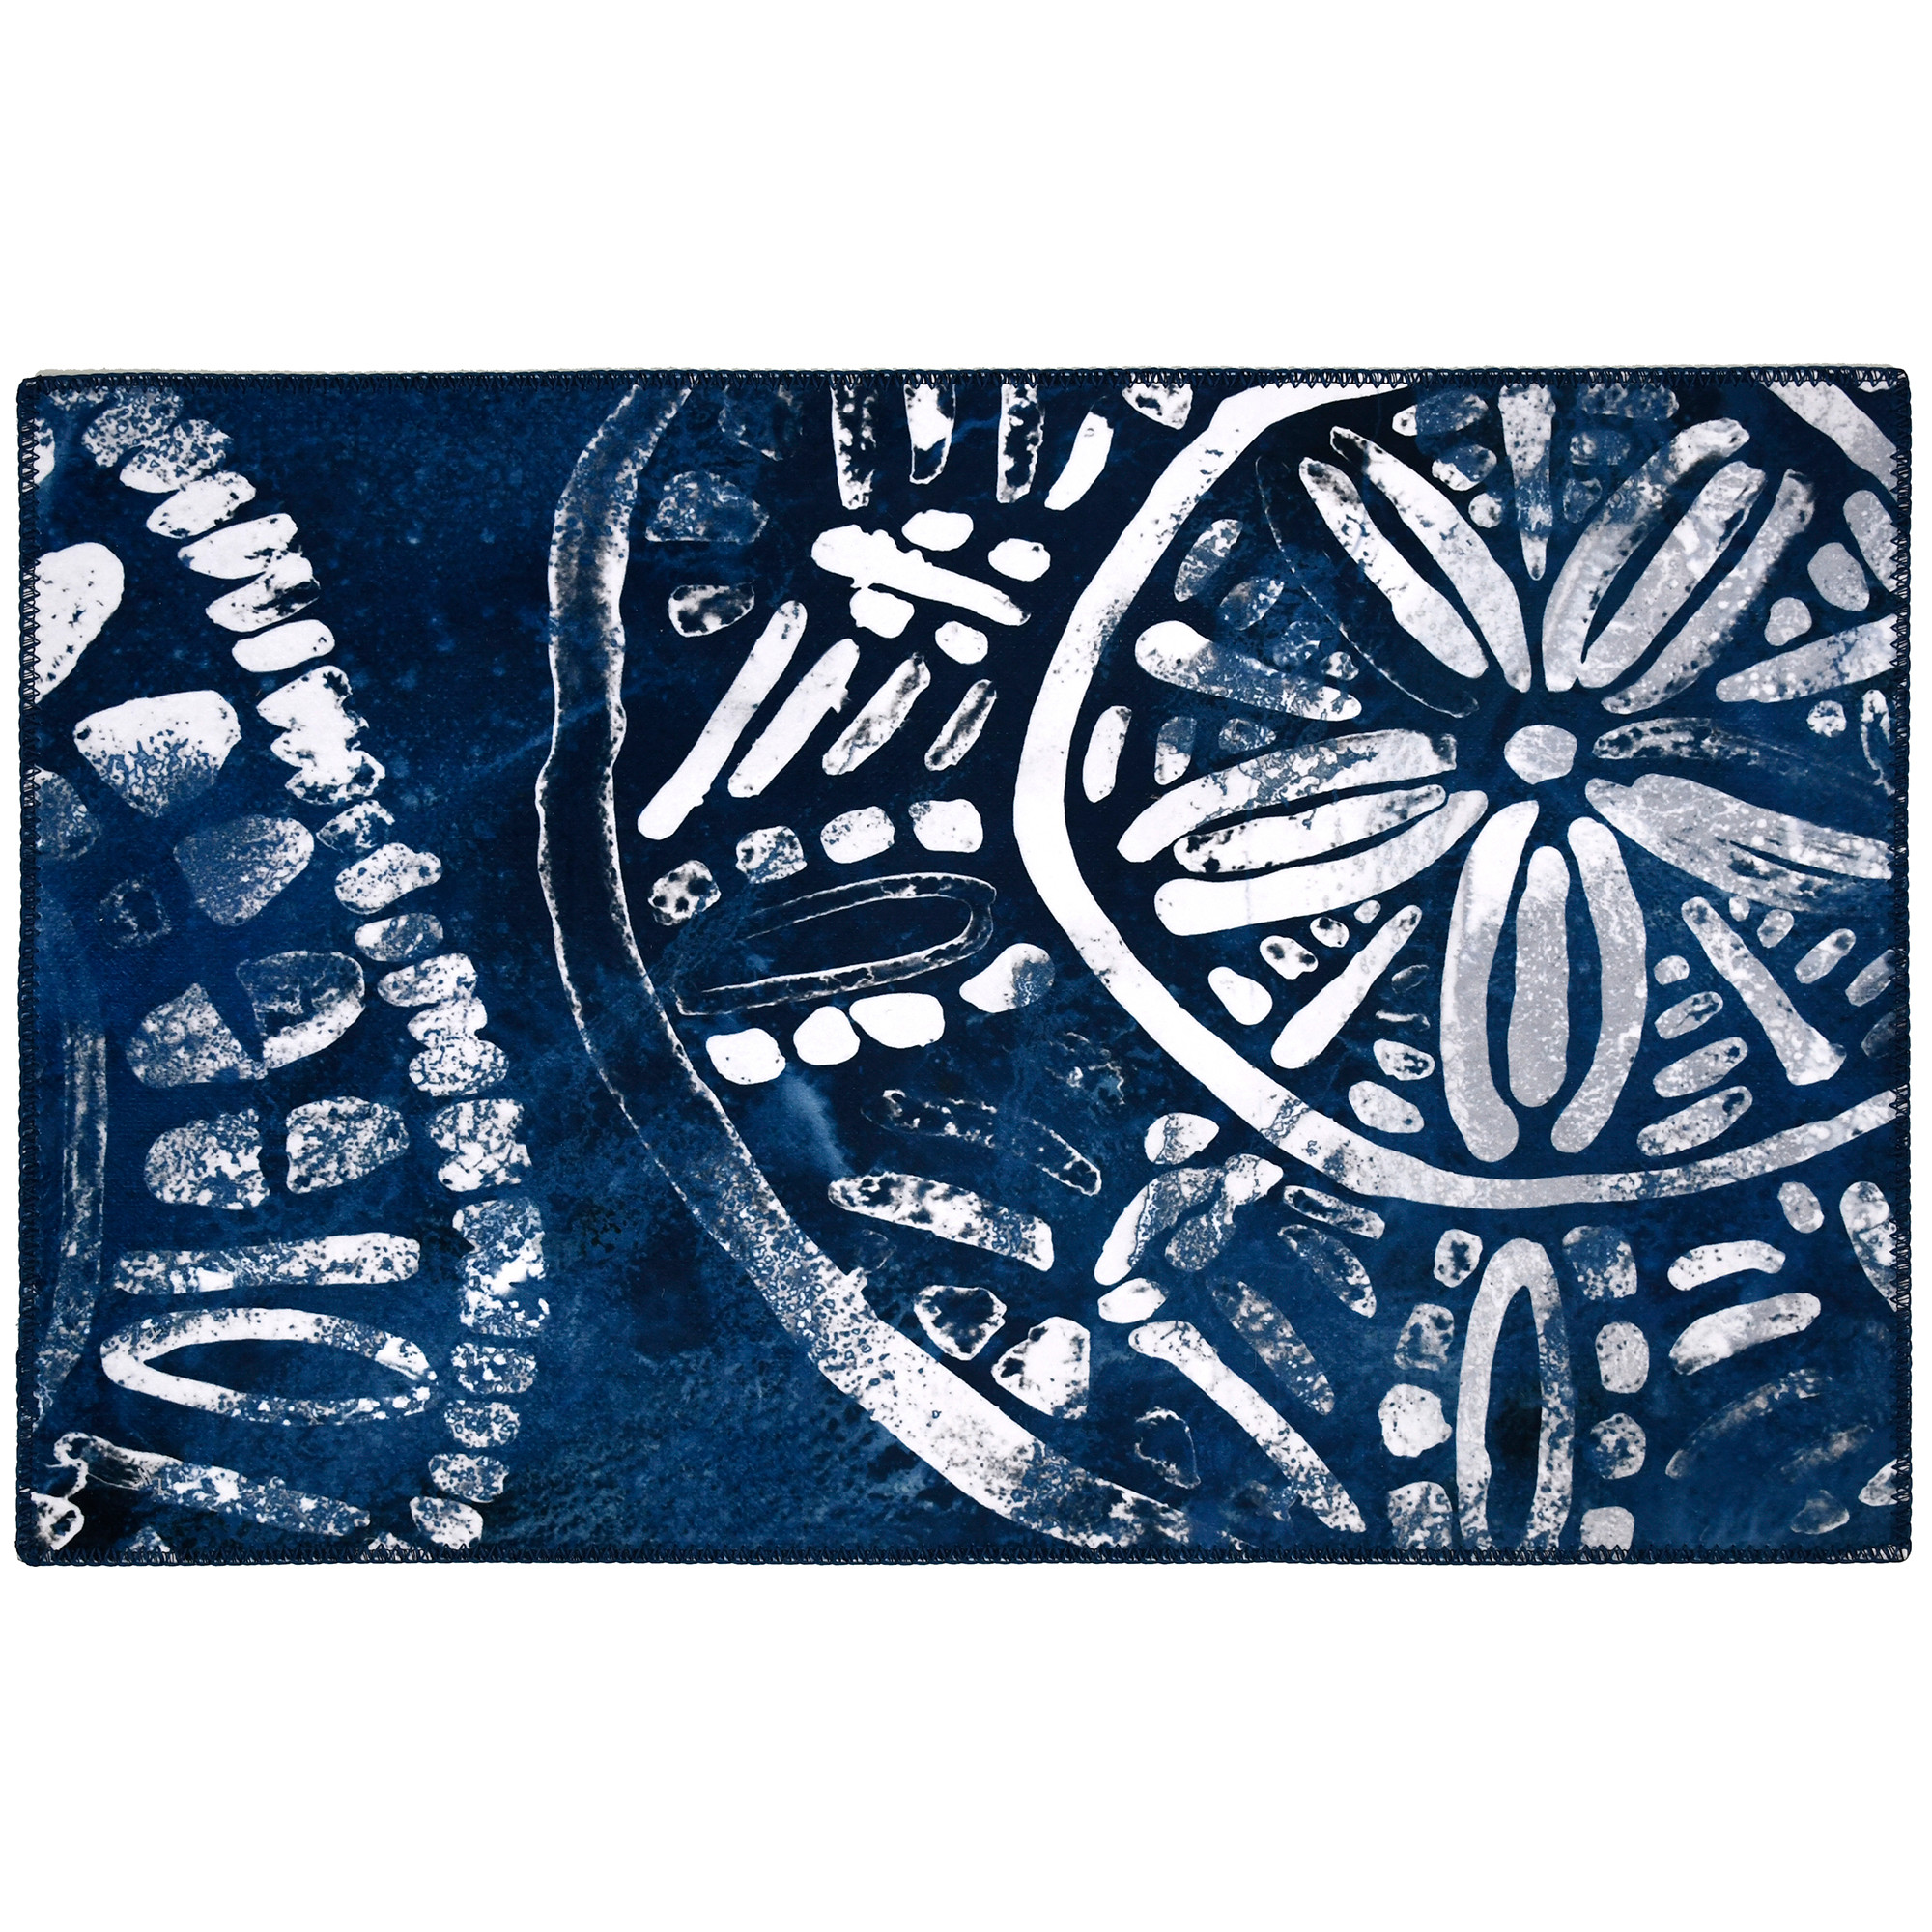 Become transformed by this nautical themed rug designed by June Erica Vess.  The rich colors, and sea inspired design will complement any décor.